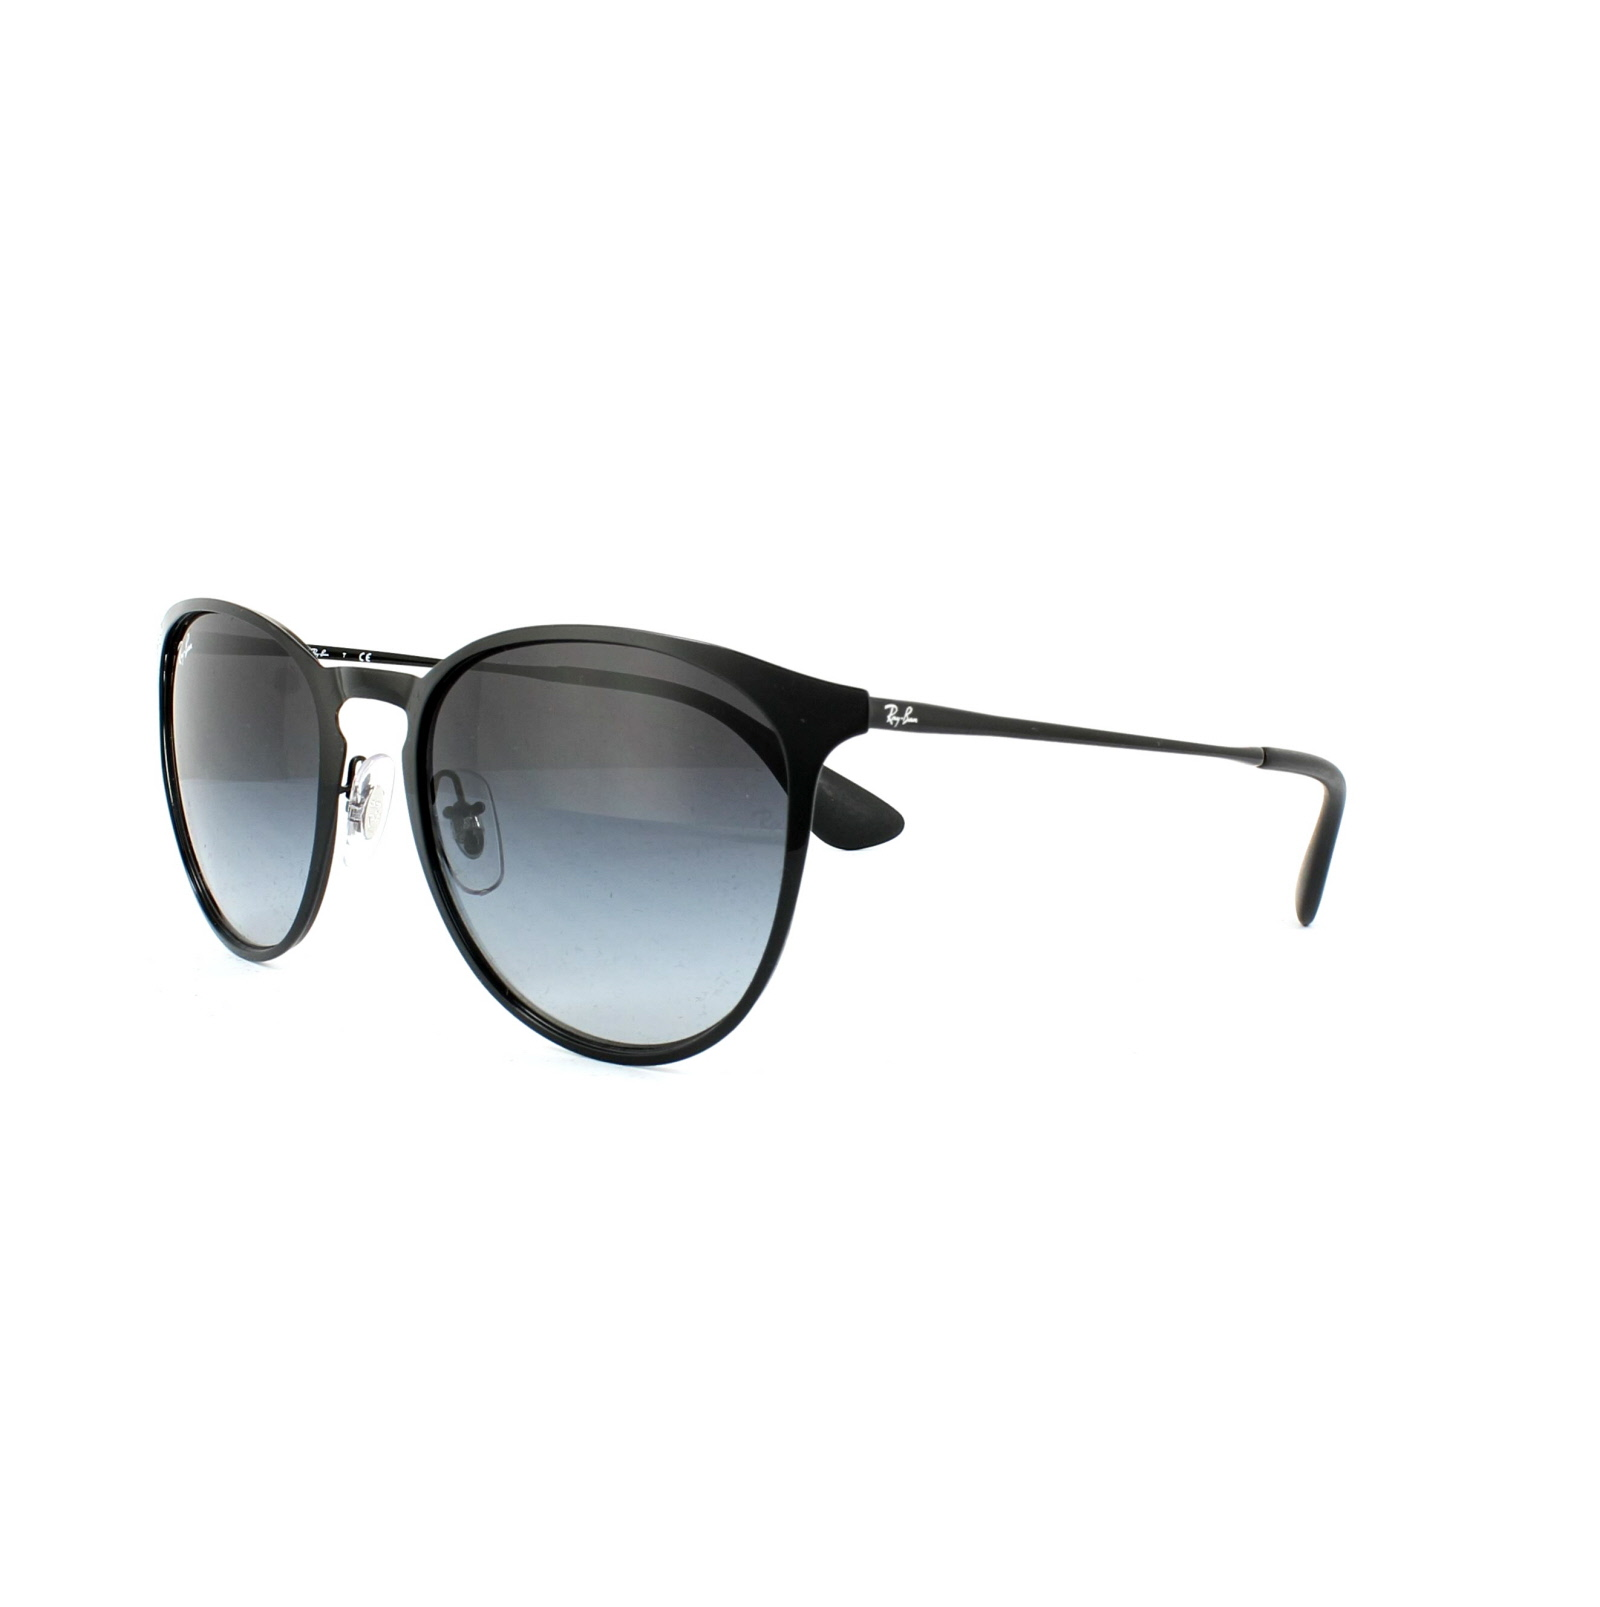 948893d688 Sentinel Ray-Ban Sunglasses Erika Metal 3539 002 8G Black Grey Gradient